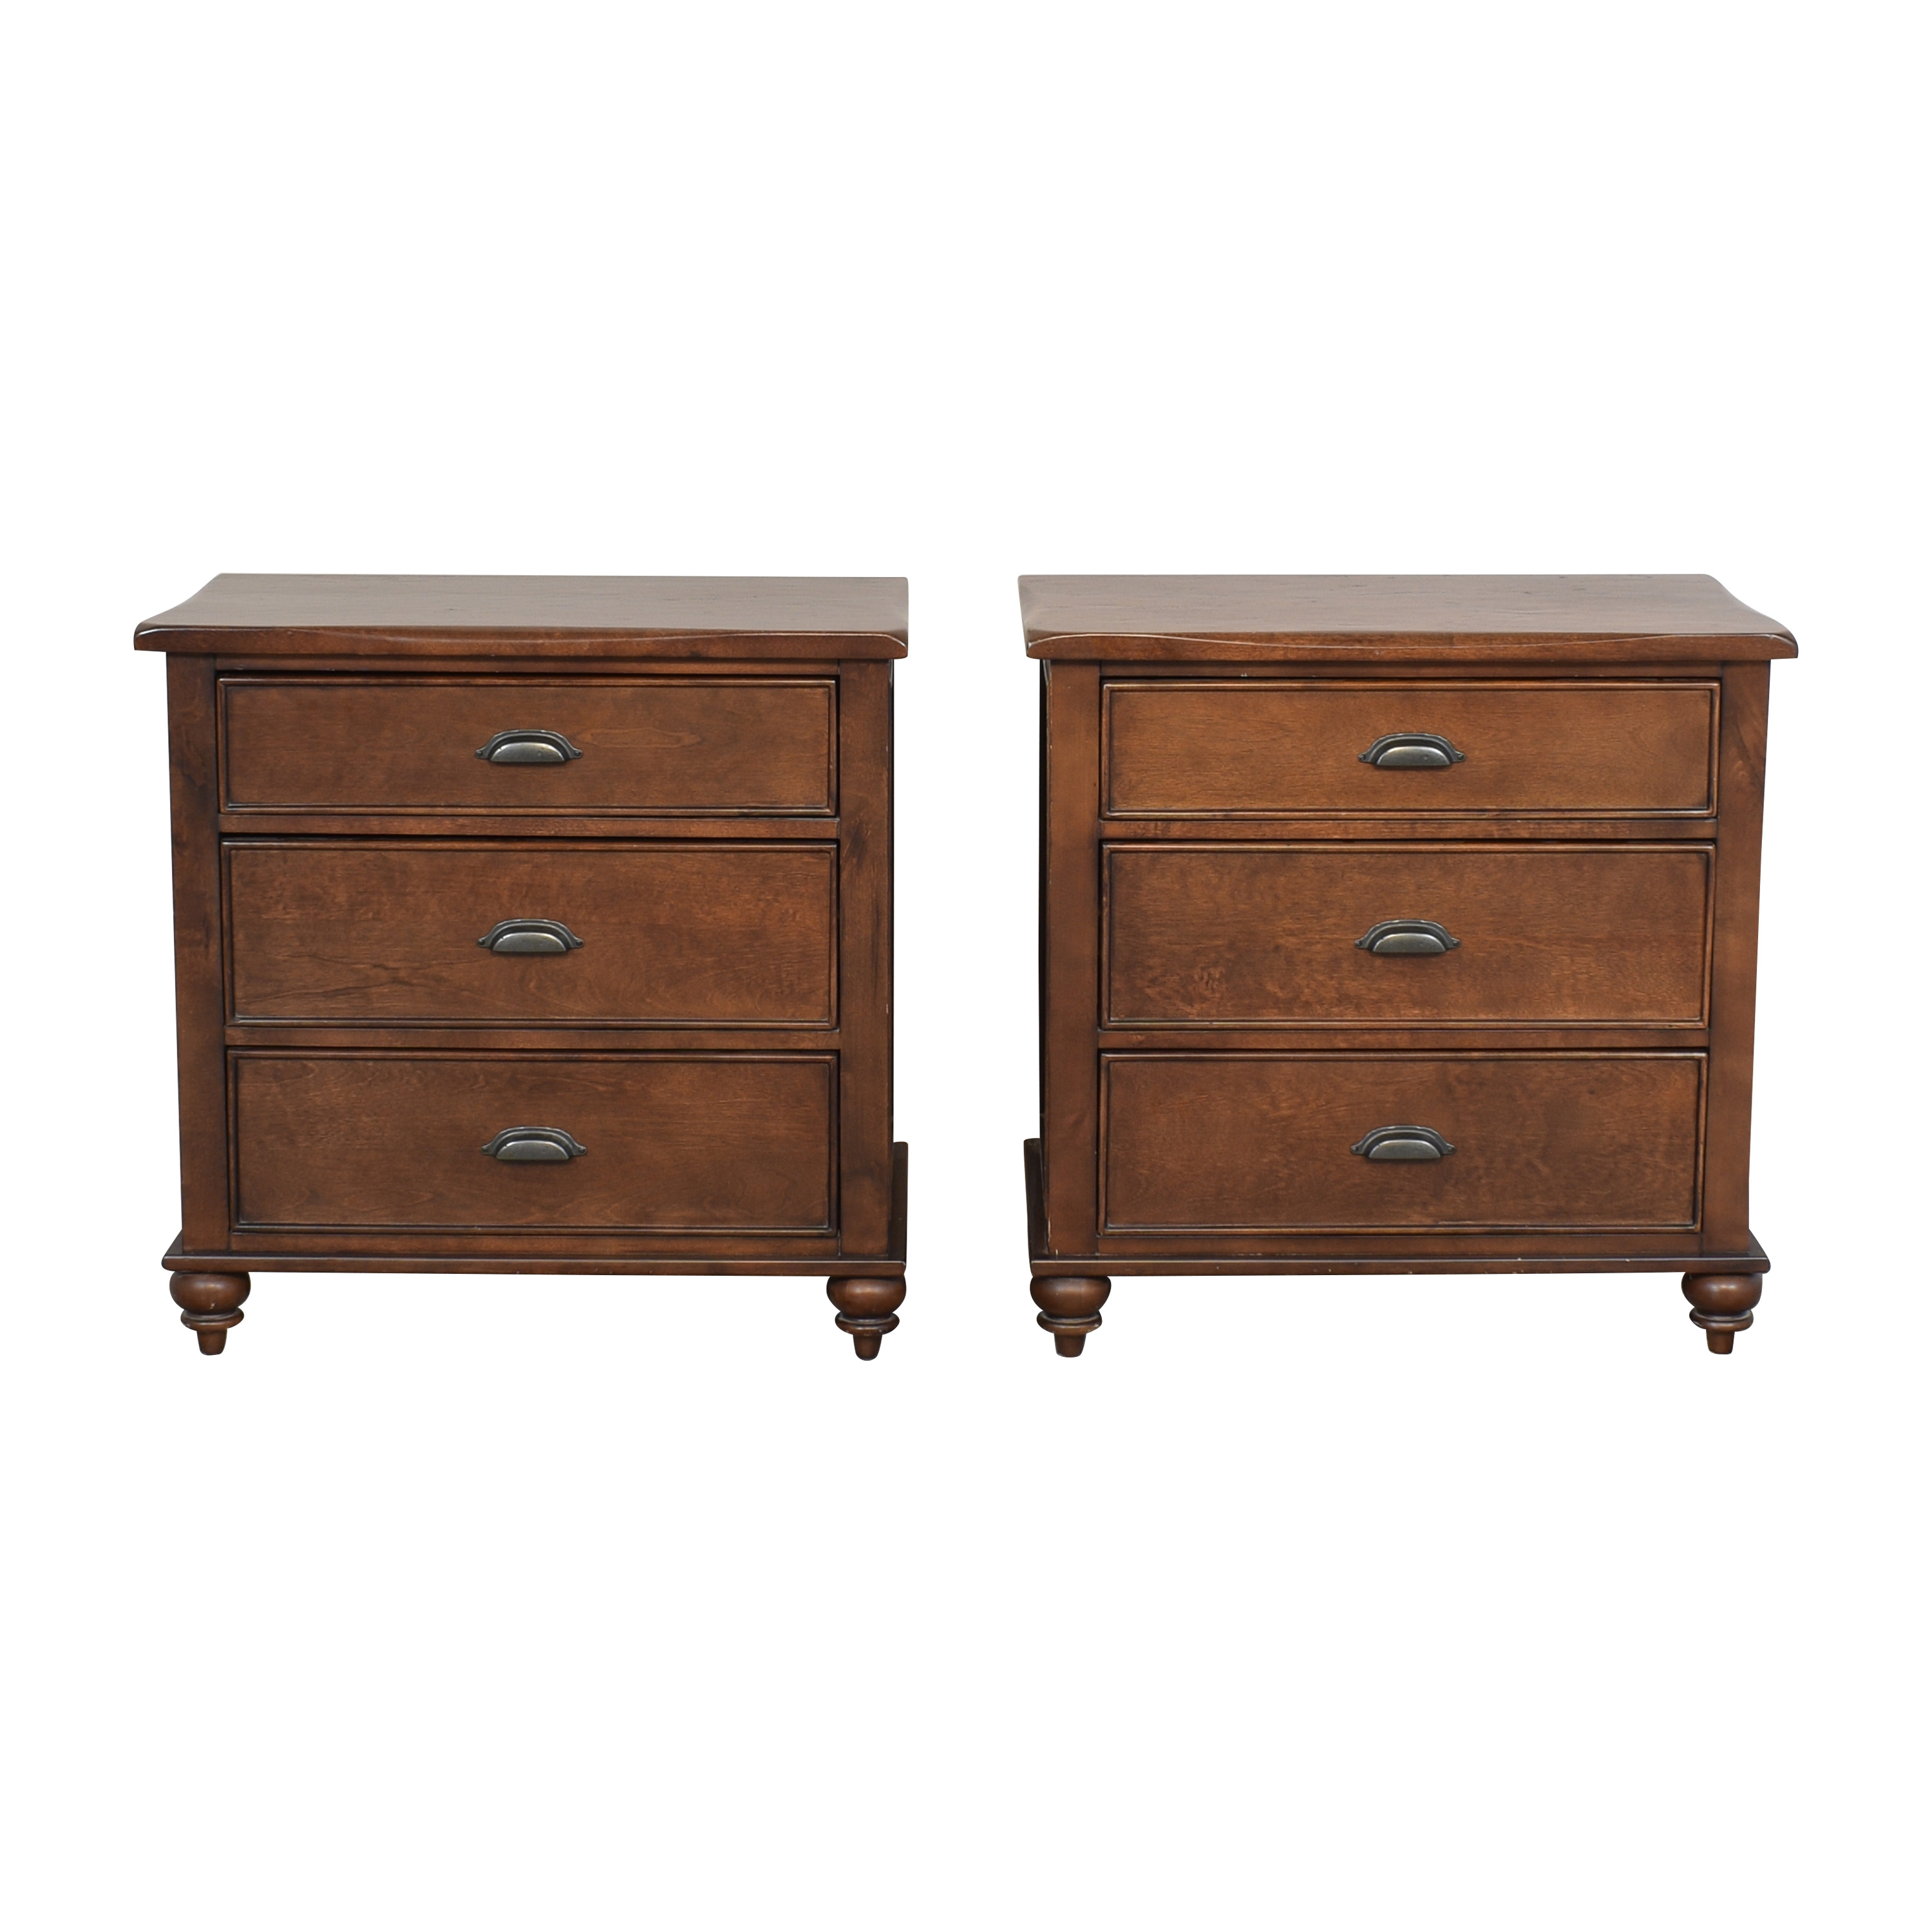 Three Drawer Nightstands ma